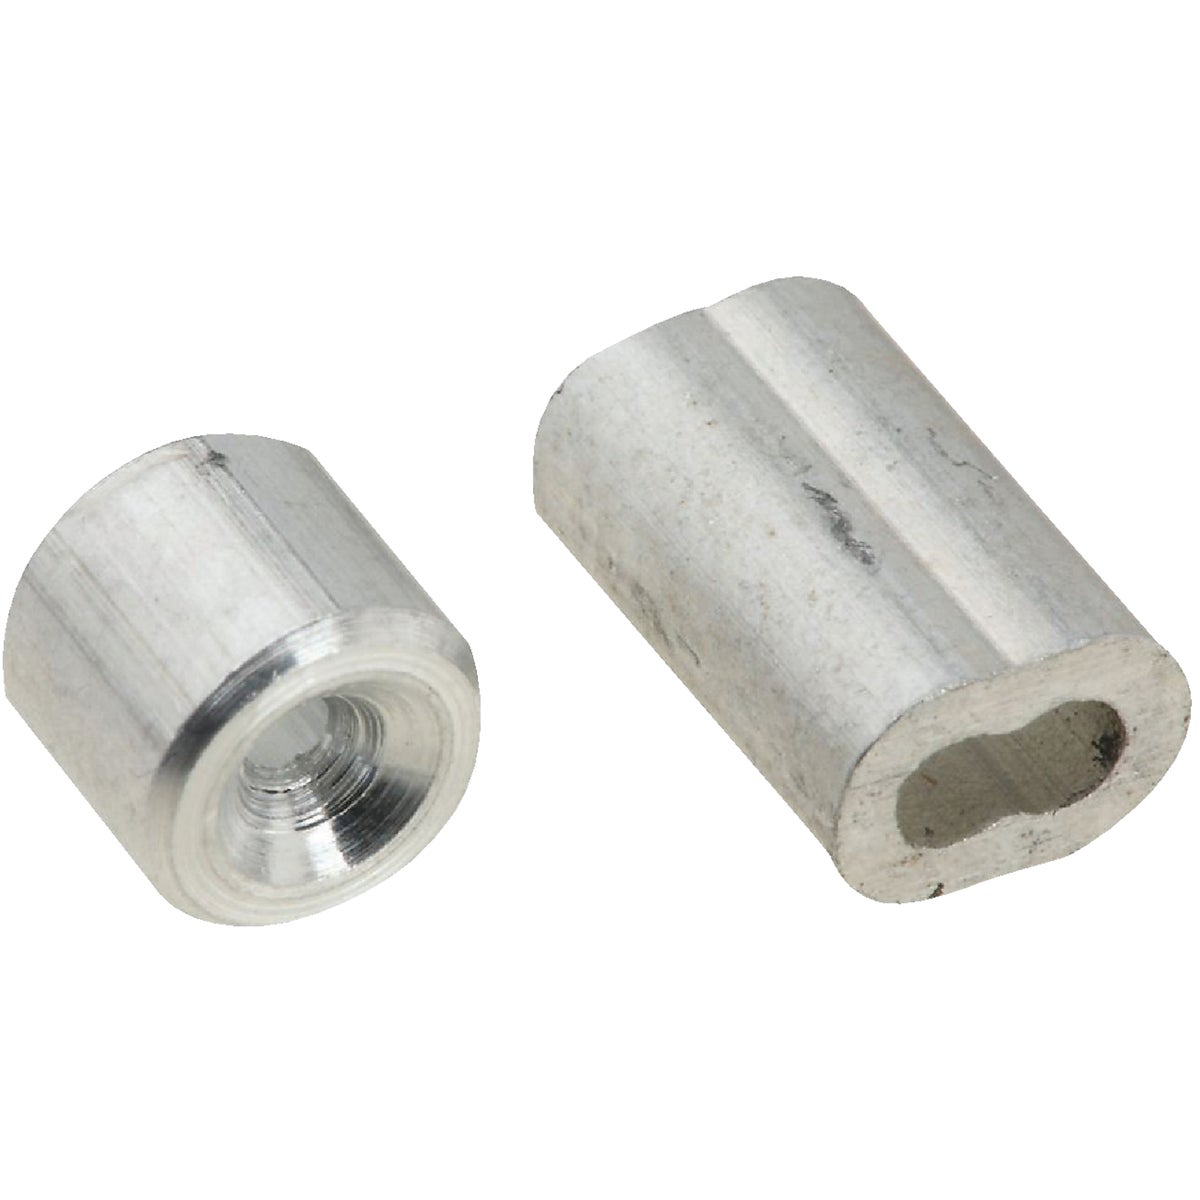 "1/16"" FERRULES & STOPS - N283846 by National Mfg Co"